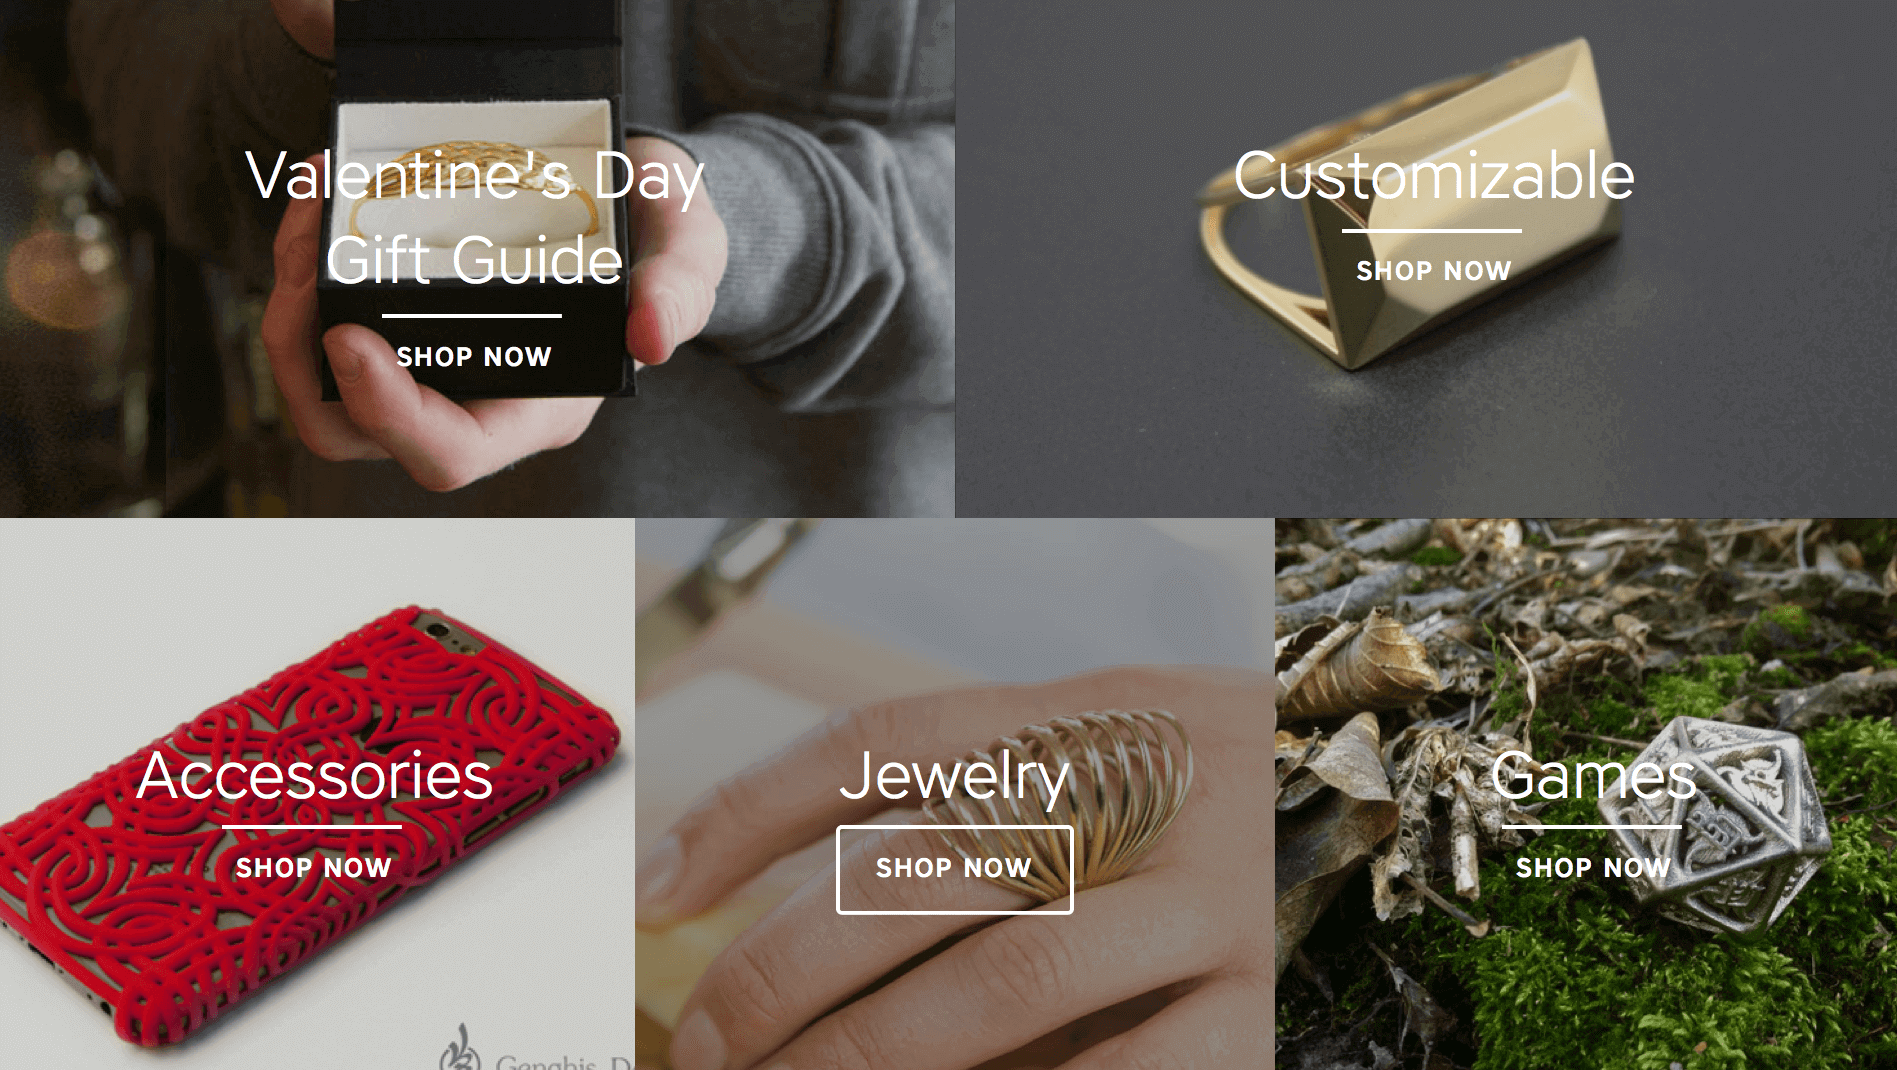 Shapeways: Company Profile in 11 Facts | All3DP